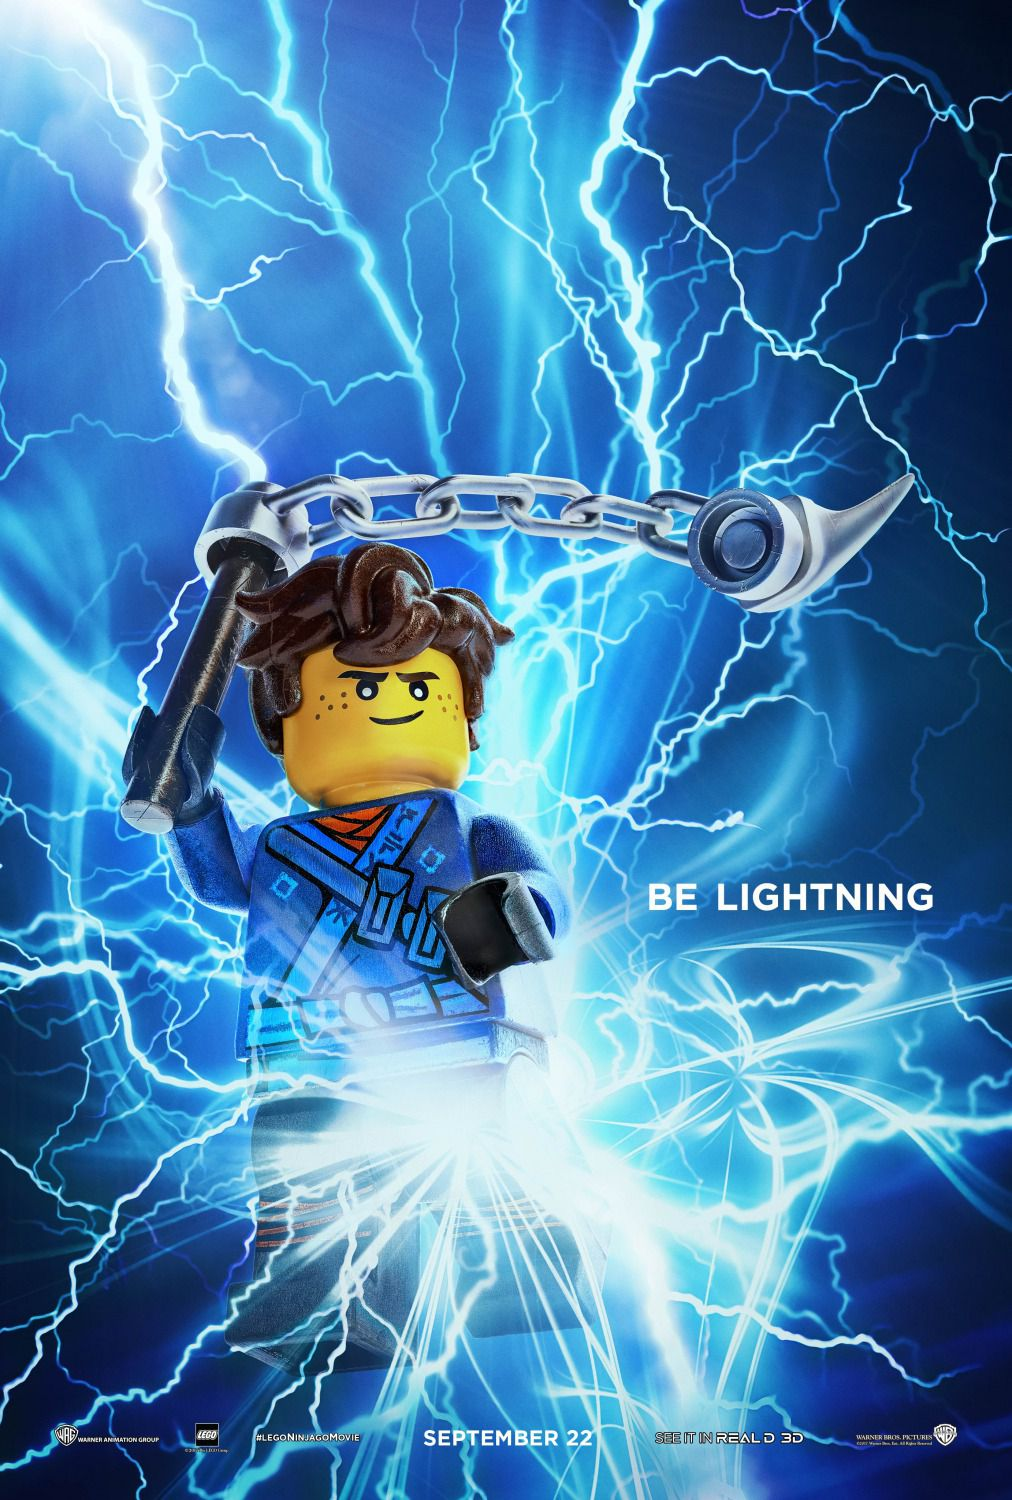 The Lego Ninjago Movie be lightning